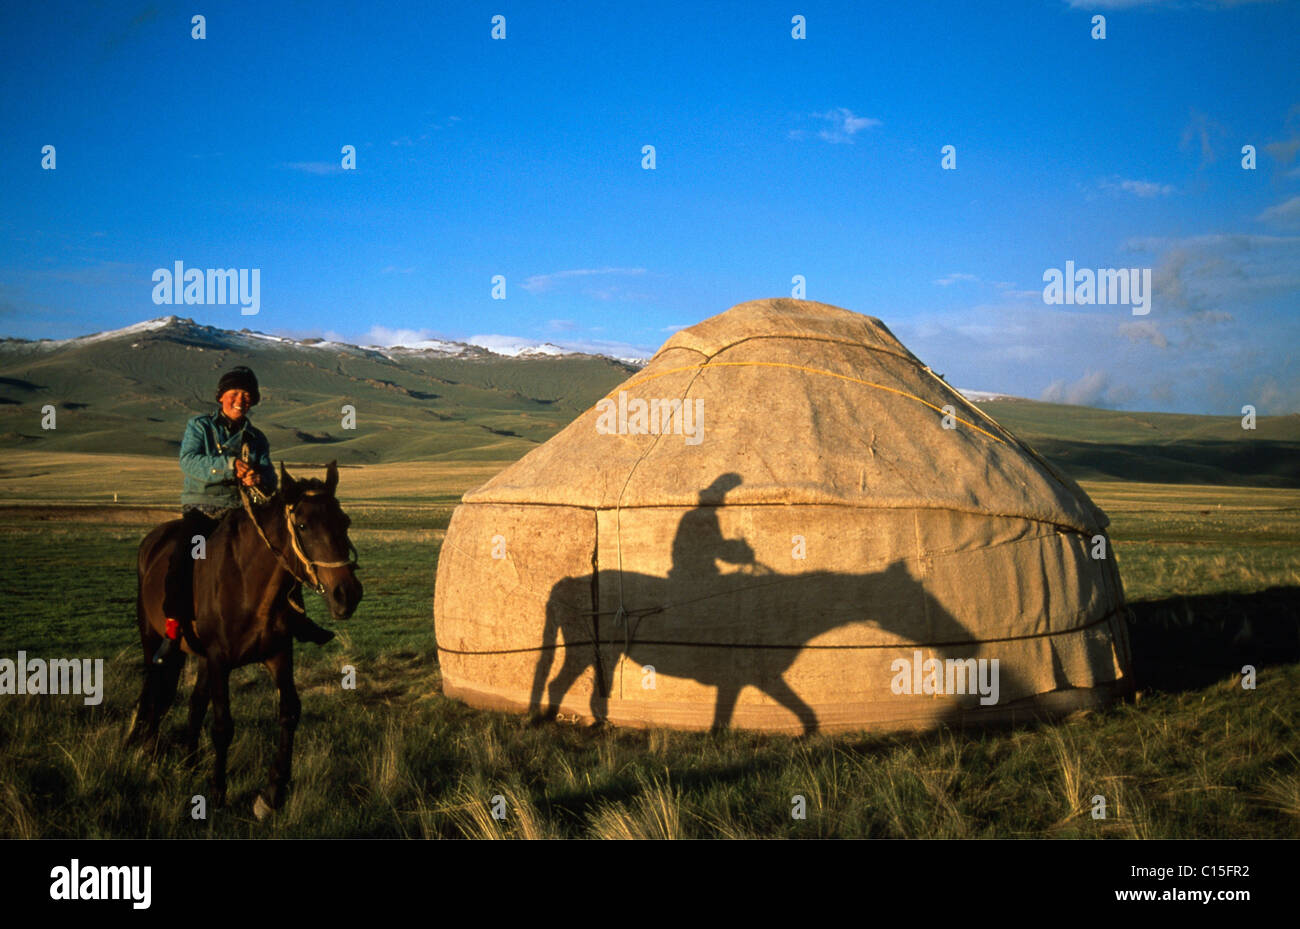 Horse and rider in front of a yurt, Moldo-Too Mountain Range, Song-Kul, Kyrgyzstan, Central Asia Stock Foto